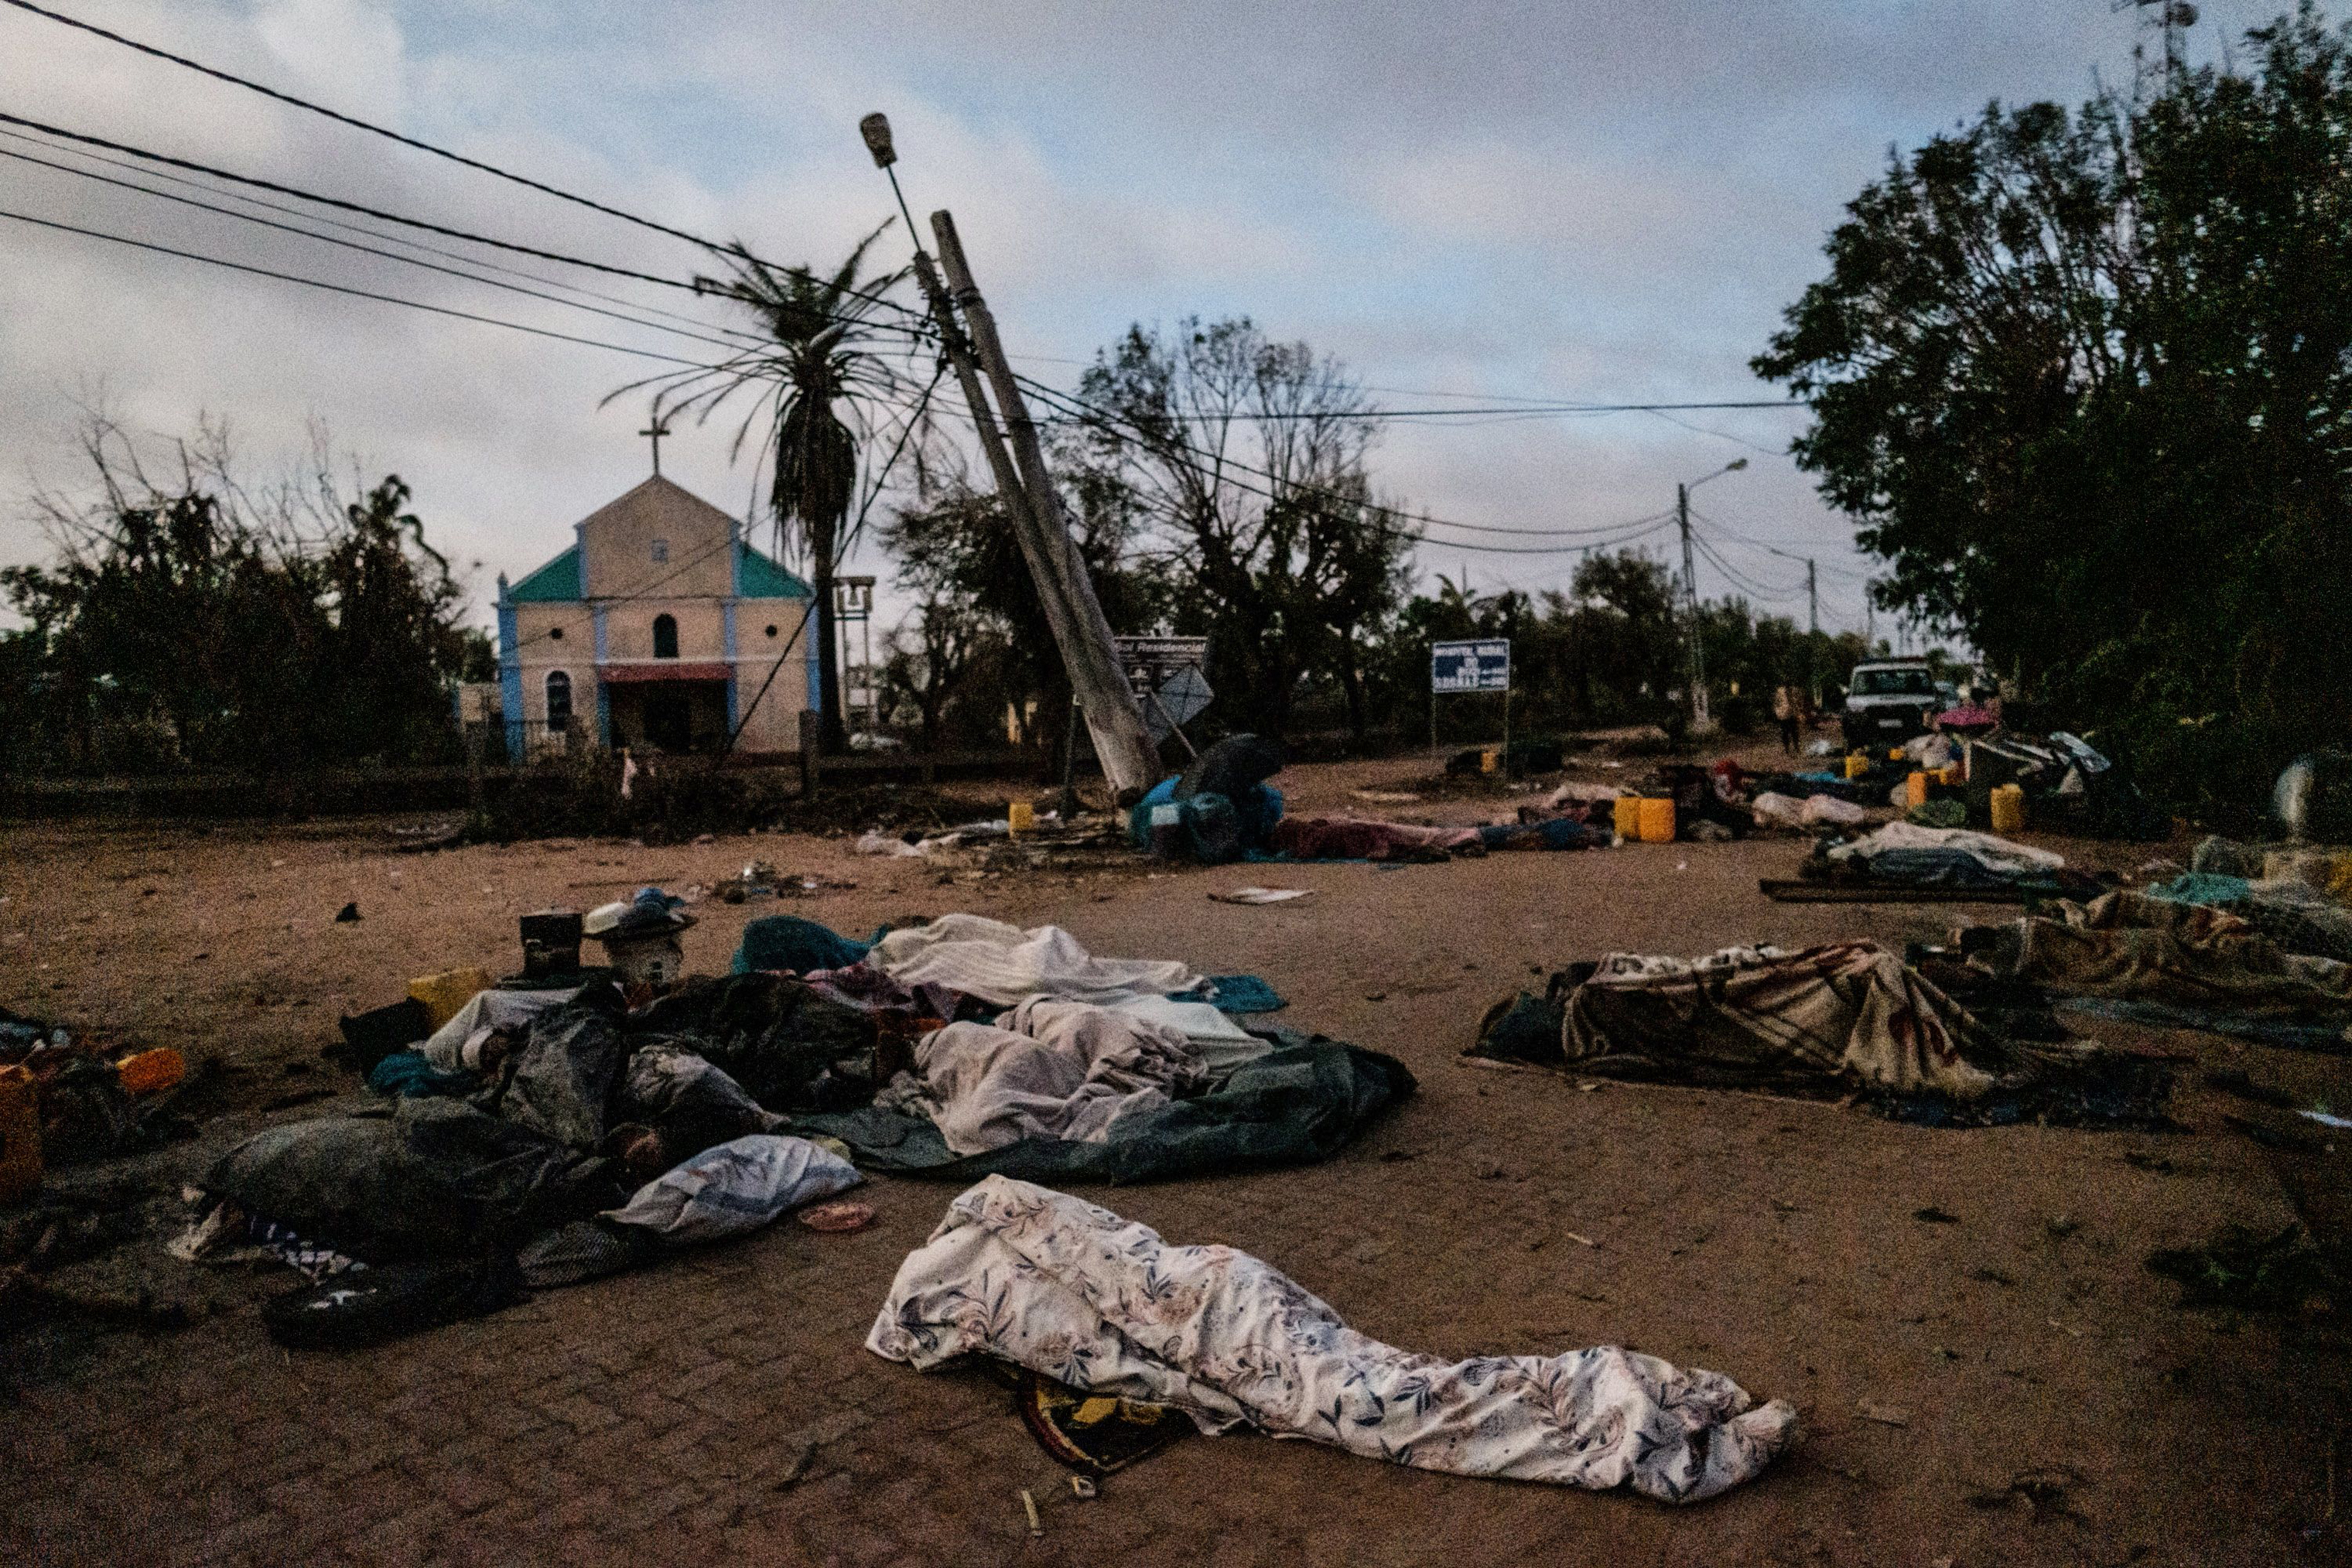 People who lost their home after cyclone Idai hit sleep on a street in Buzi, Mozambique, on March 23, 2019.